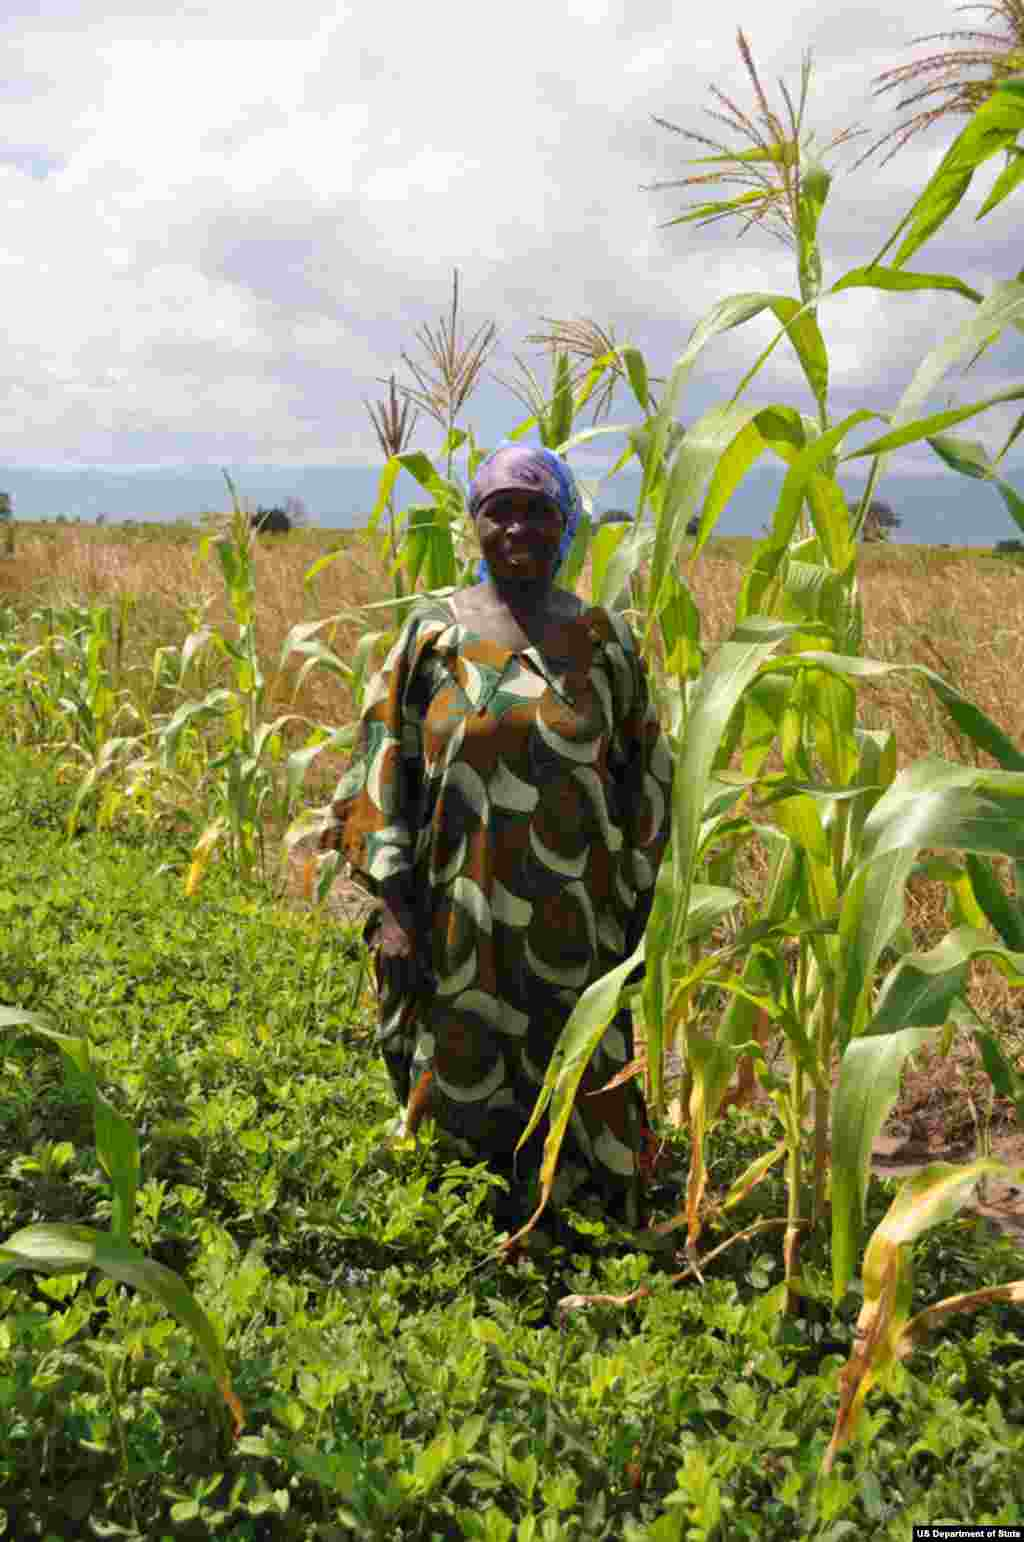 Congo Farmer standing in demonstration plot of maize and groundnuts in Kigurwe Democratic Republic of the Congo photo credit: Jessica Hartl, USAID